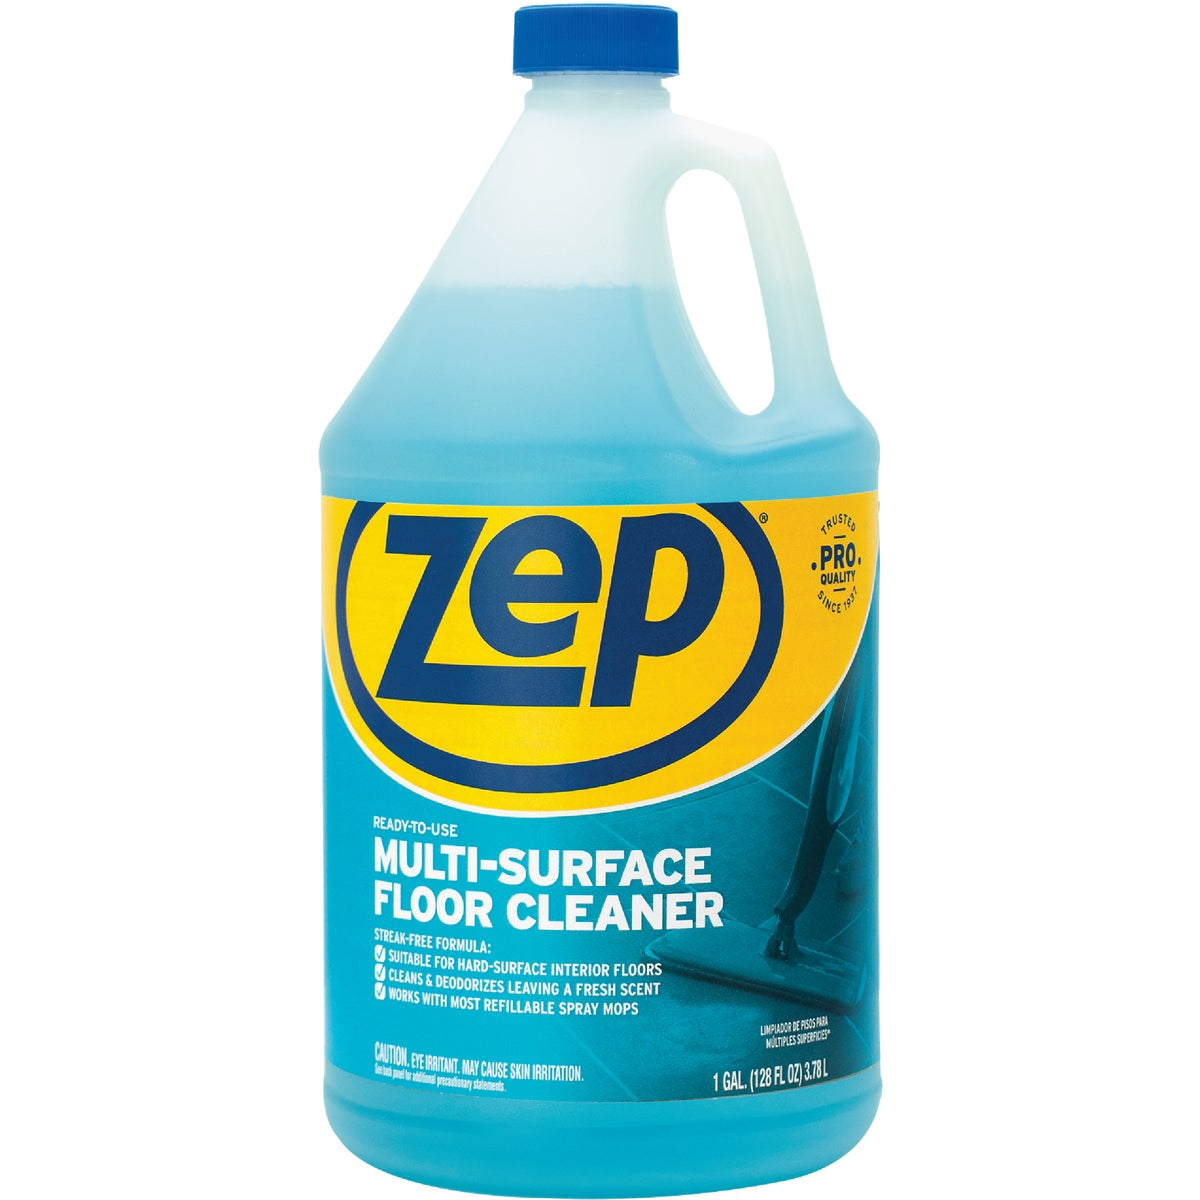 Zep Multi-Surface Floor Cleaner, ZUMSF128